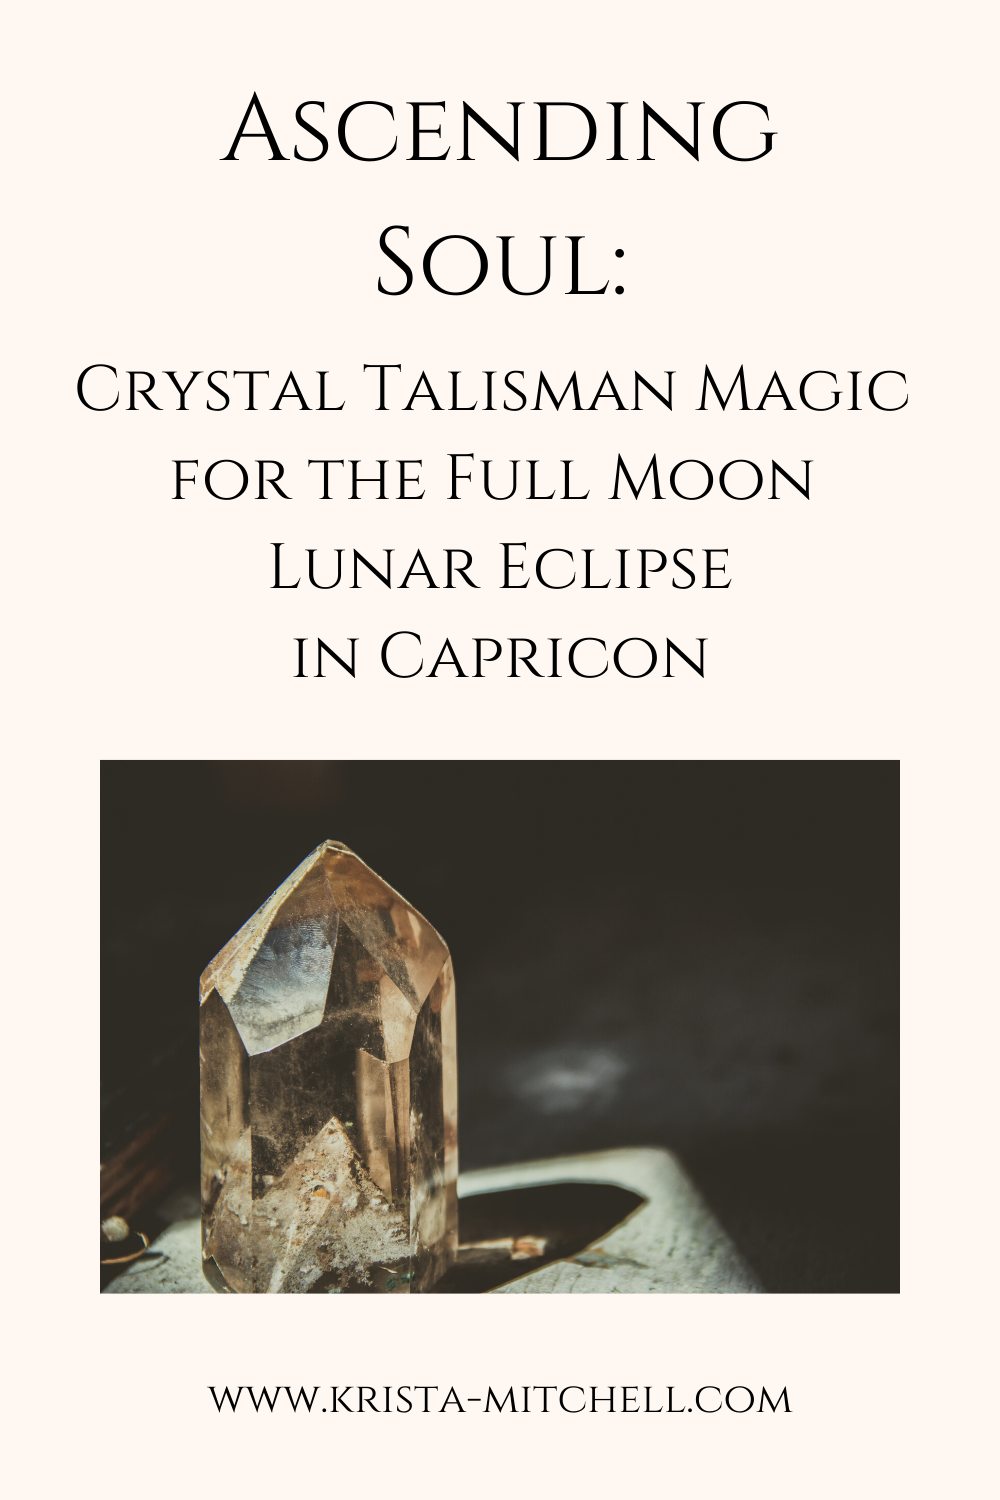 Ascending Soul: Crystal Talisman Magic for the Full Moon Lunar Eclipse in Capricorn / www.krista-mitchell.com